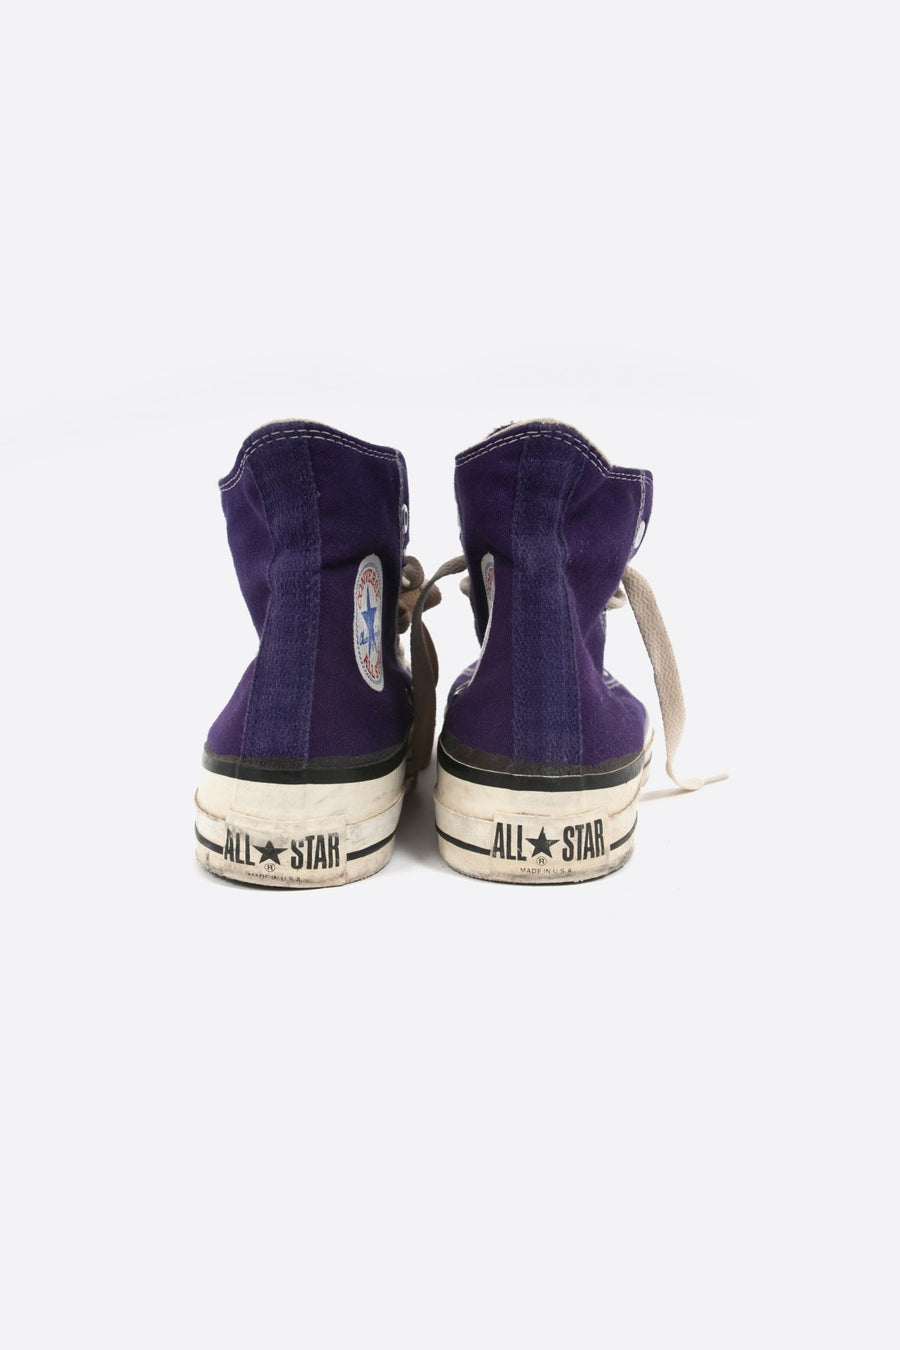 Converse Violette Made In USA - WASTED PARIS